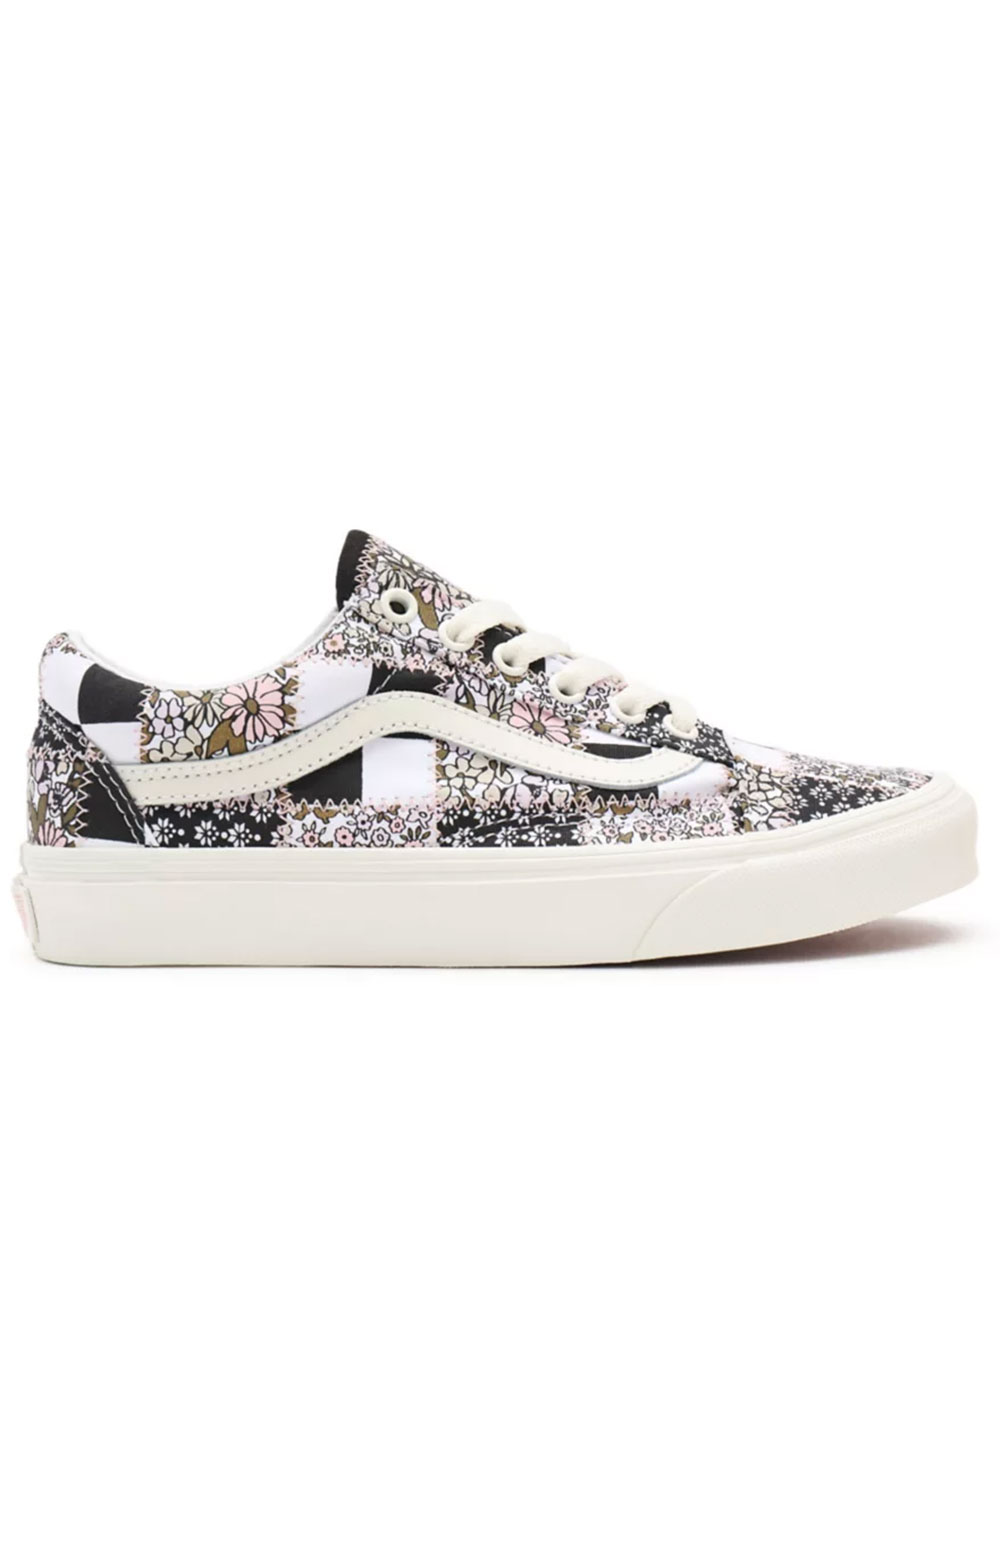 (8G19FY) Patchwork Floral Old Skool Shoes - Multi/Marshmallow